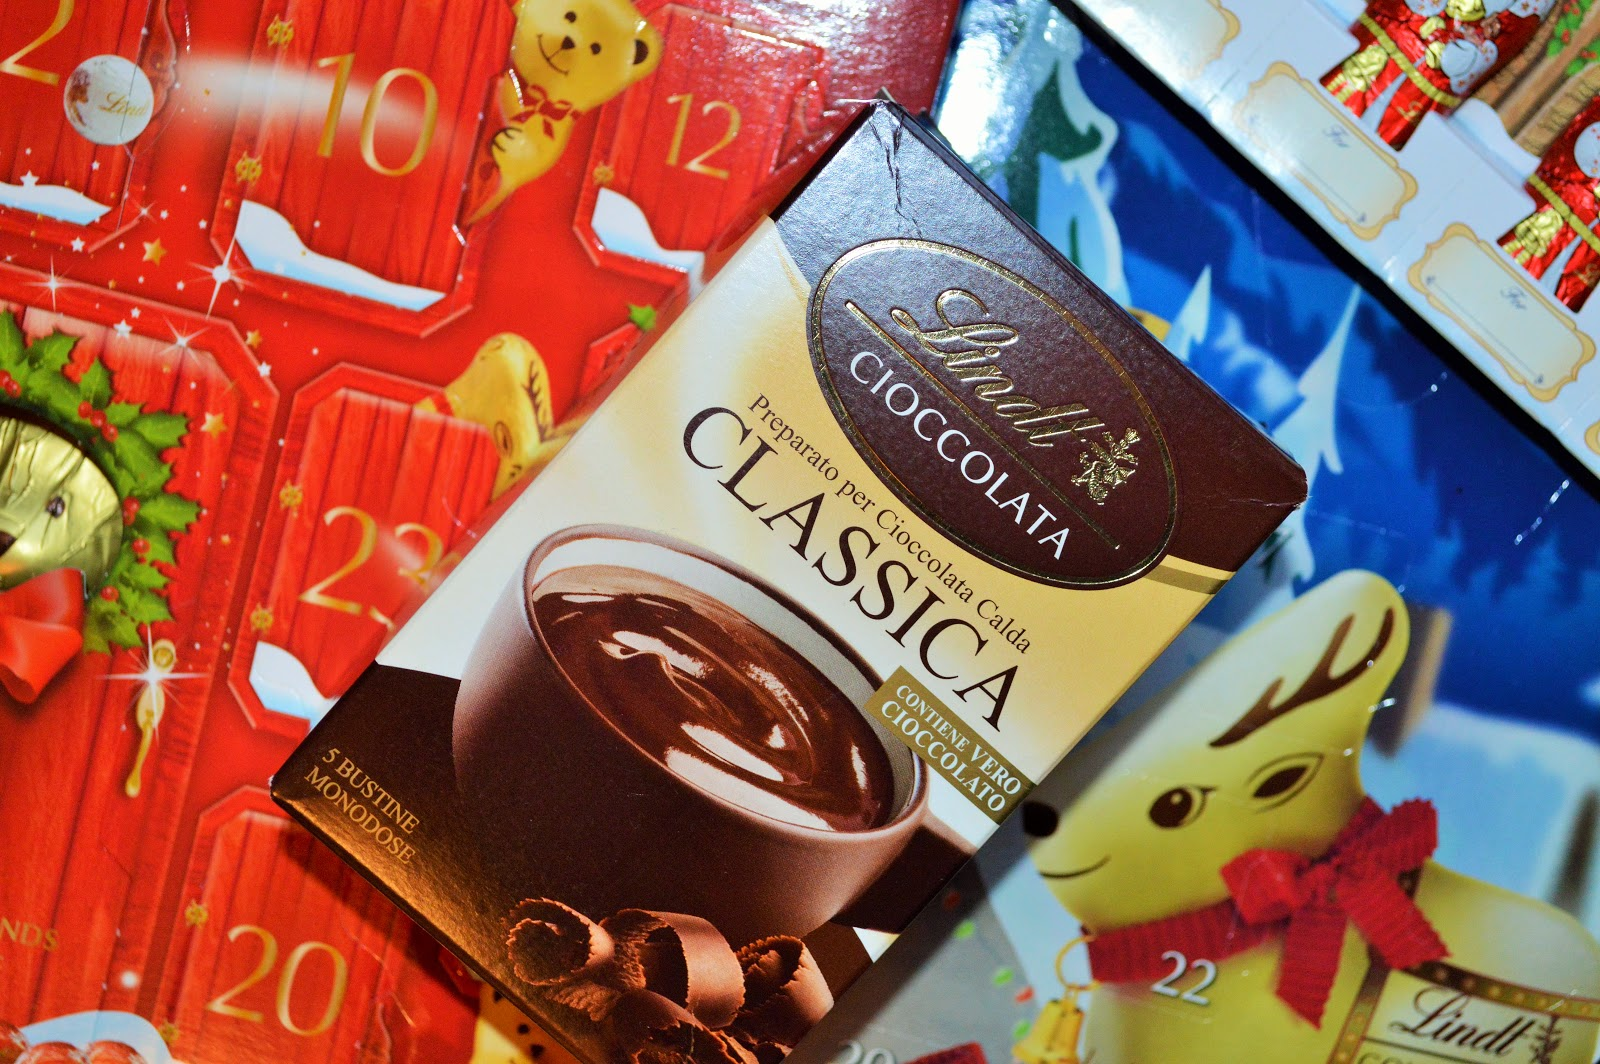 Lindt Hot Chocolate